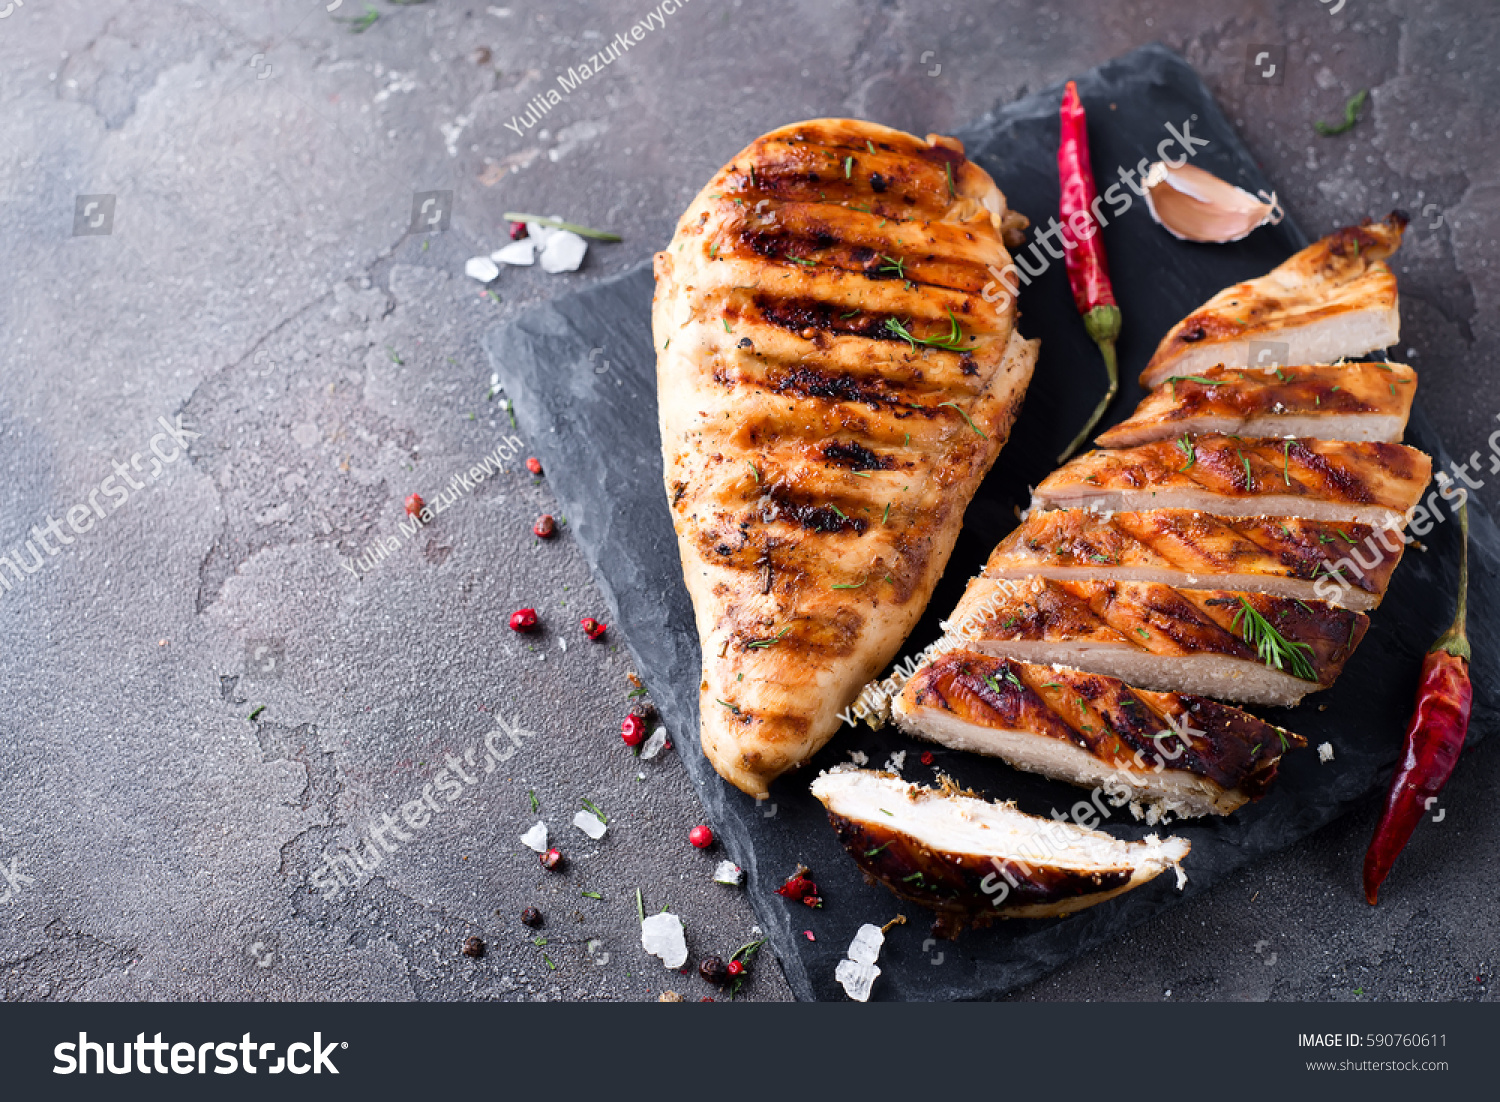 whole and sliced chicken breast with spices on a stone board, top view copy space #590760611